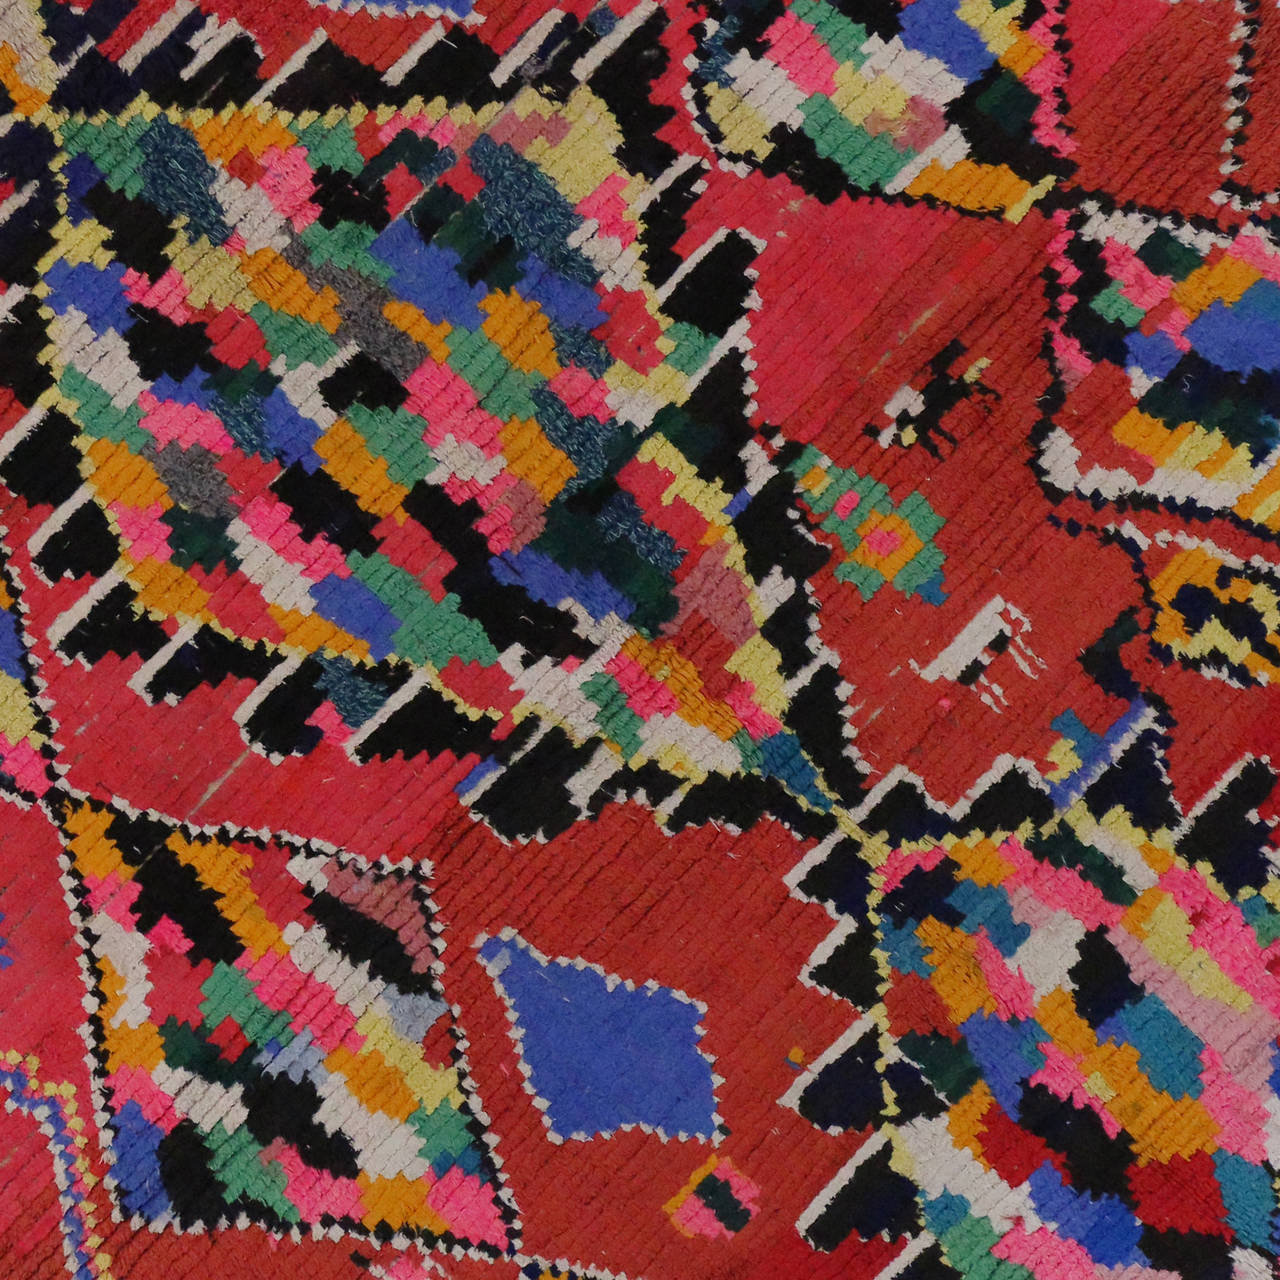 Vintage Berber Moroccan Rug With Contemporary Abstract